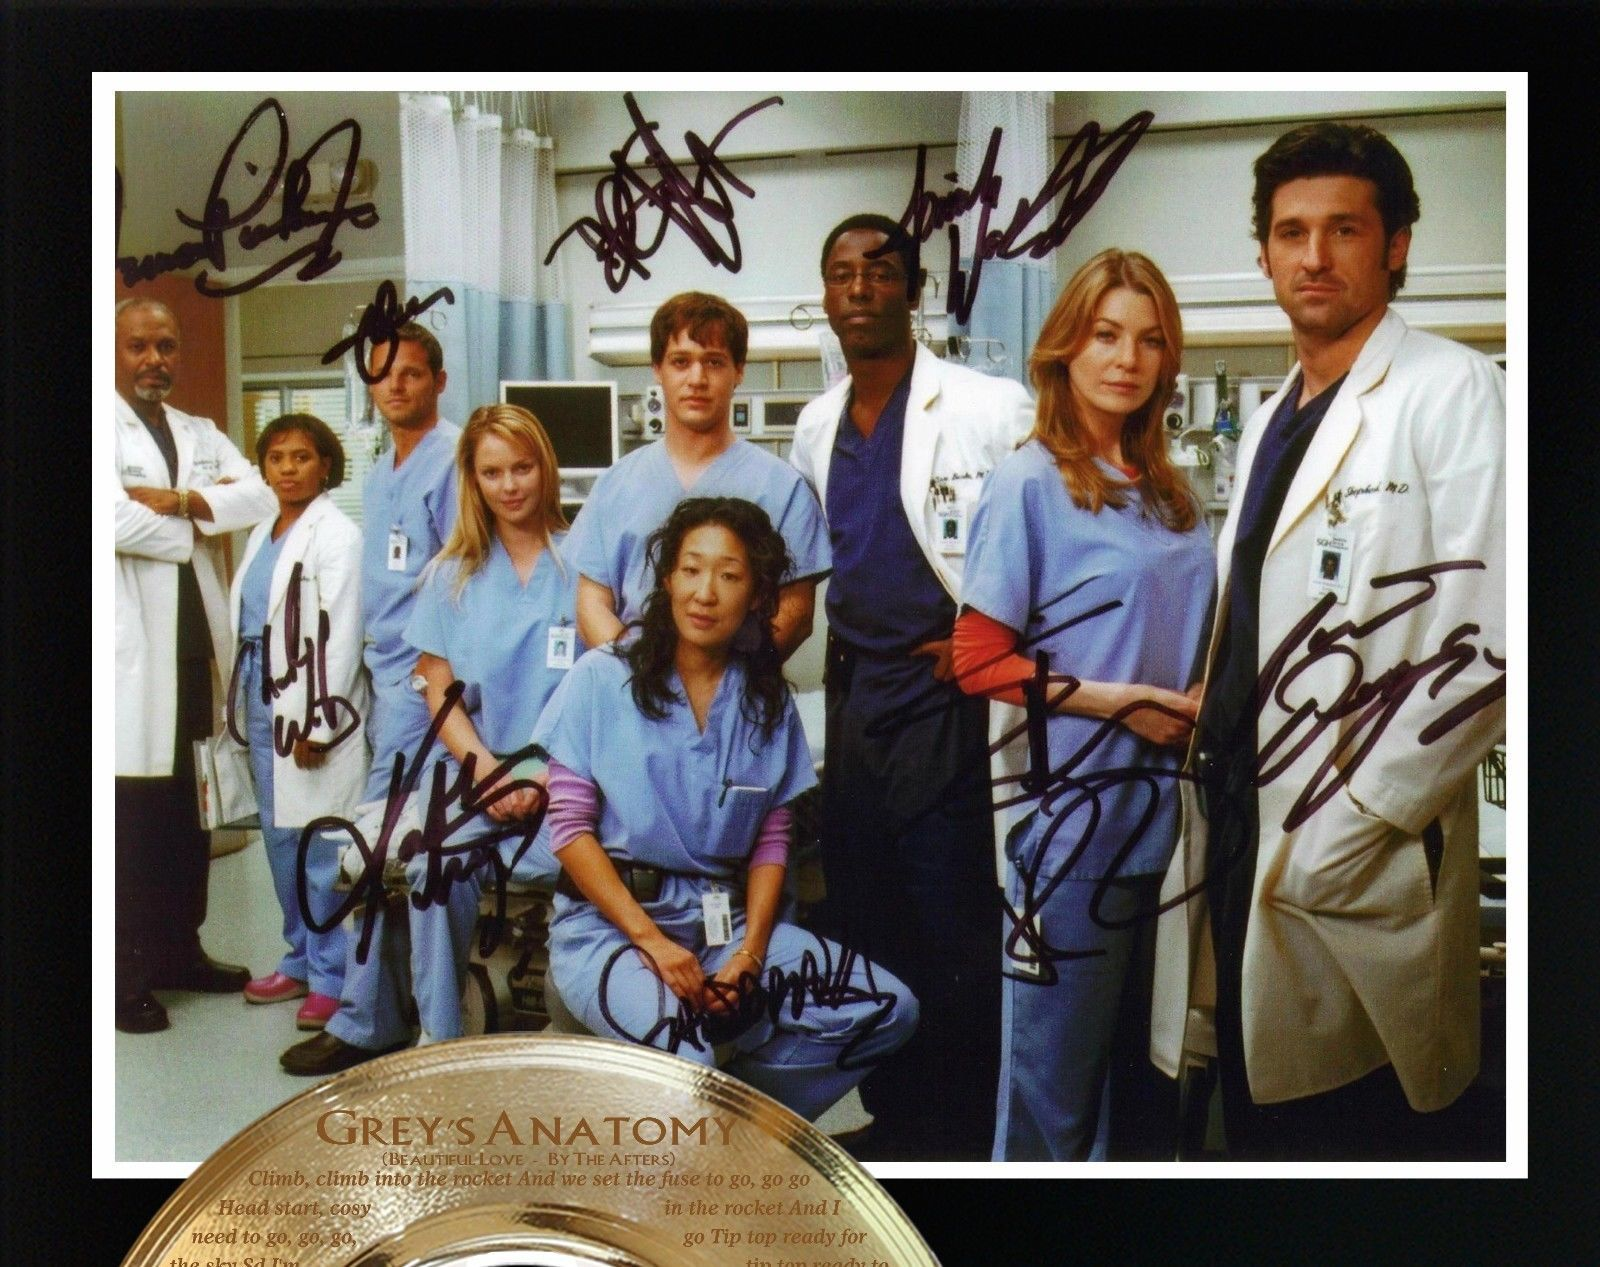 GREY'S ANATOMY LIMITED EDITION SIGNATURE AND THEME SONG ...